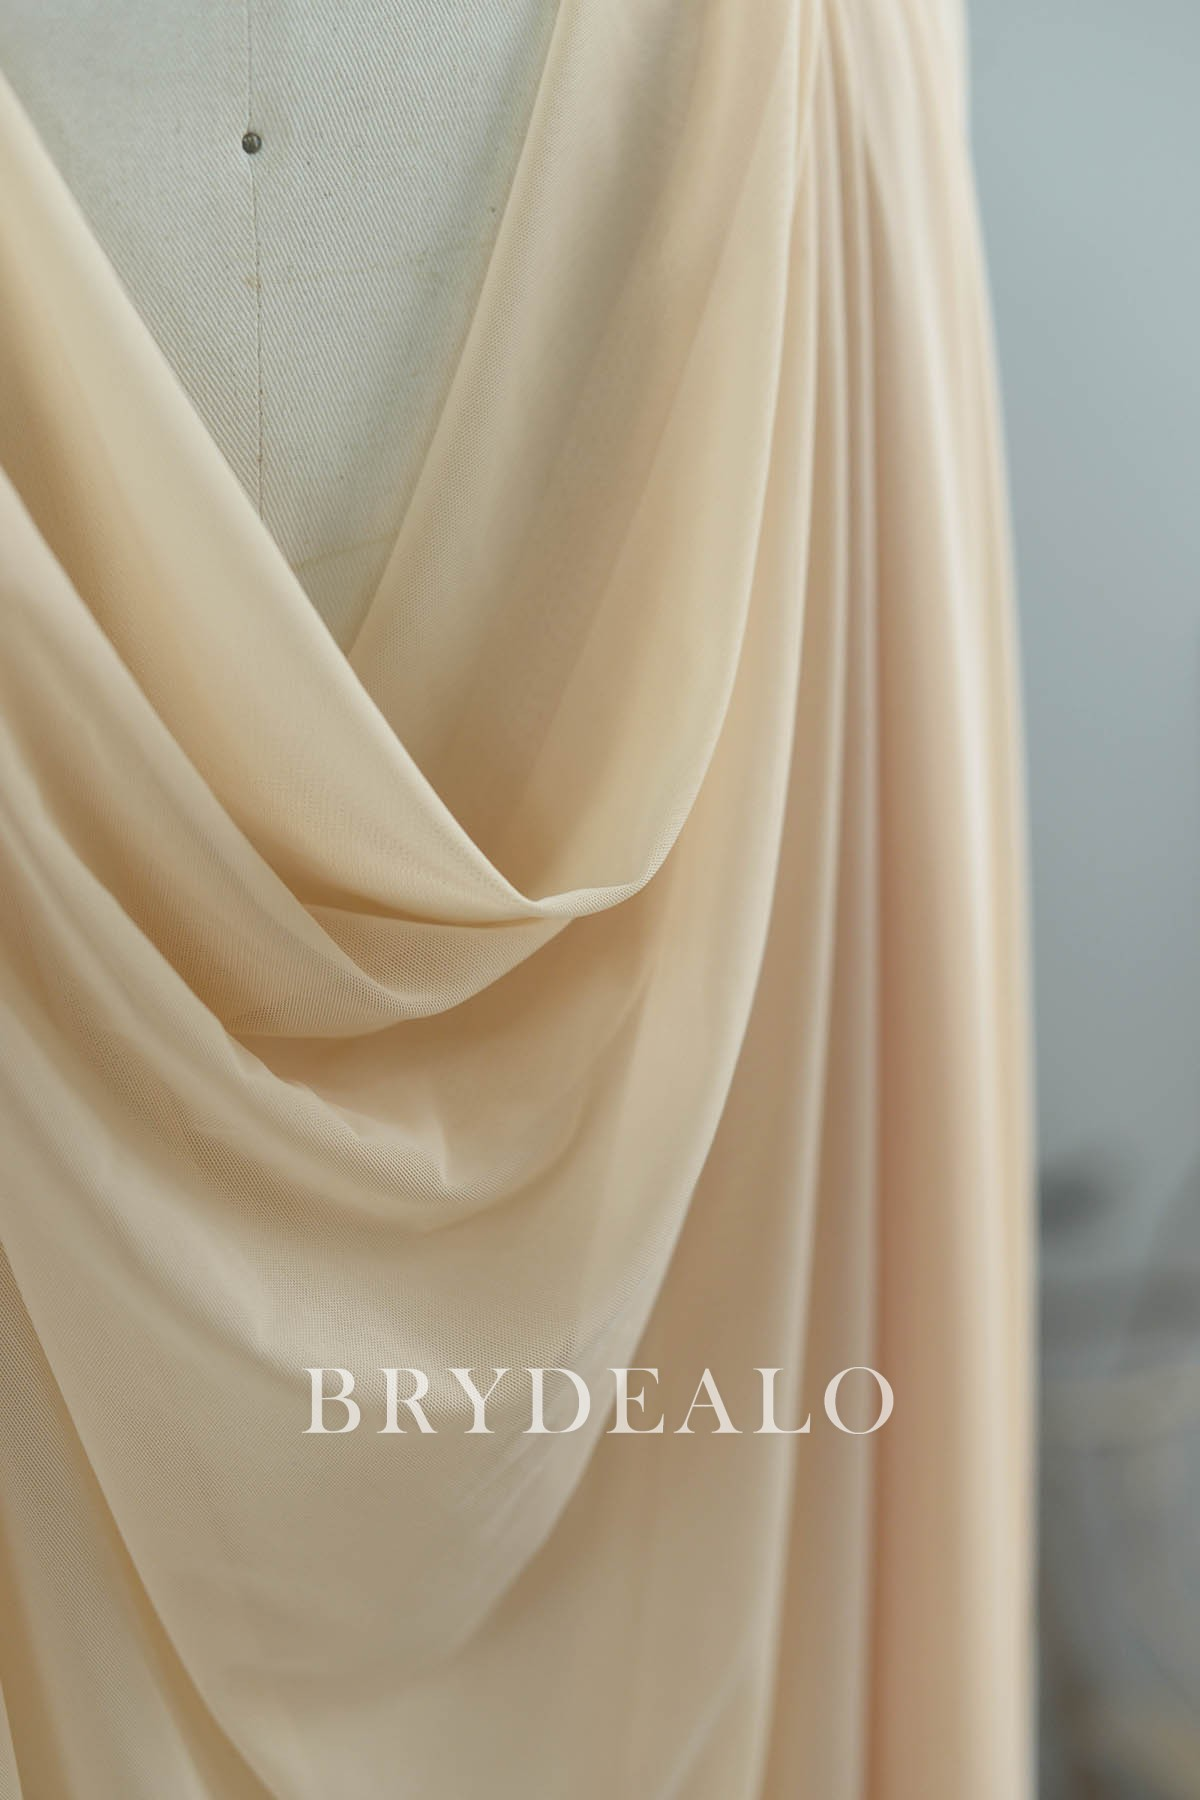 Power Mesh Nude 60 Wide Poly-Spandex Fabric by the Yard